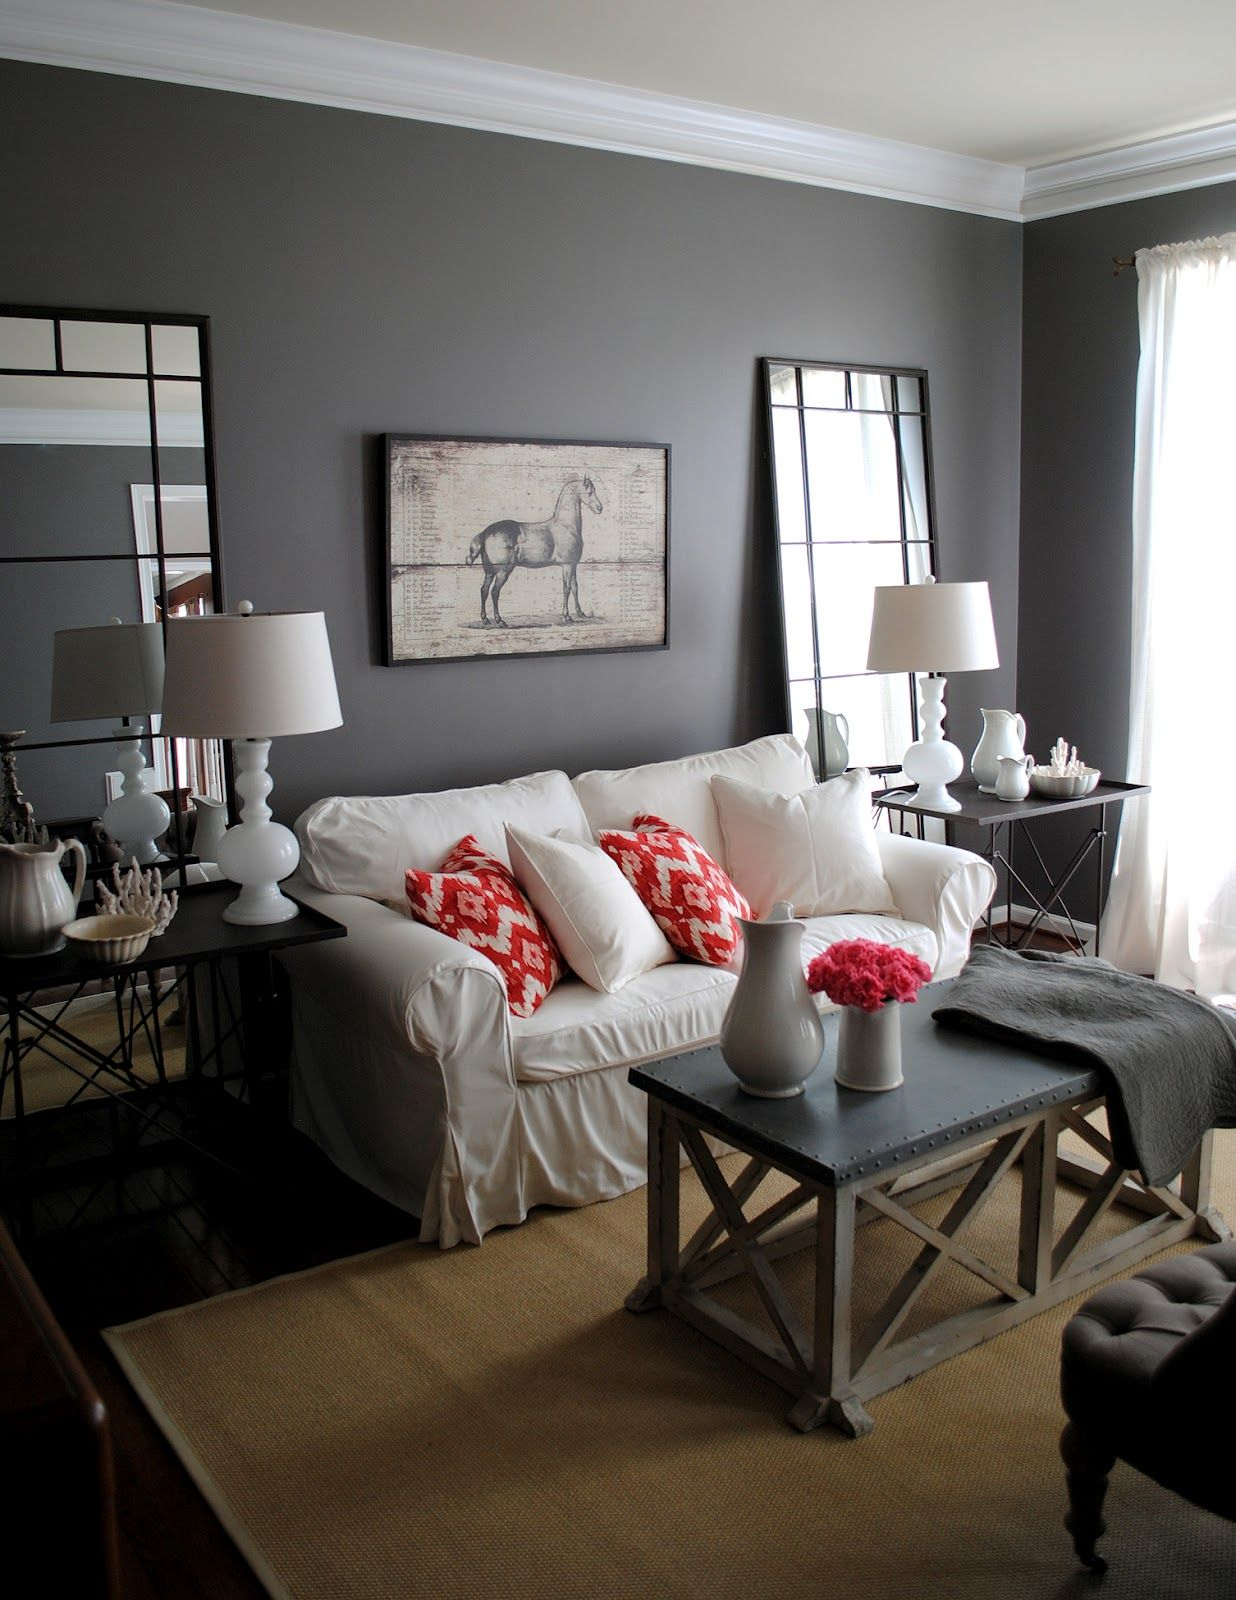 I just painted my walls charcoal thinking of these colors for my entry room